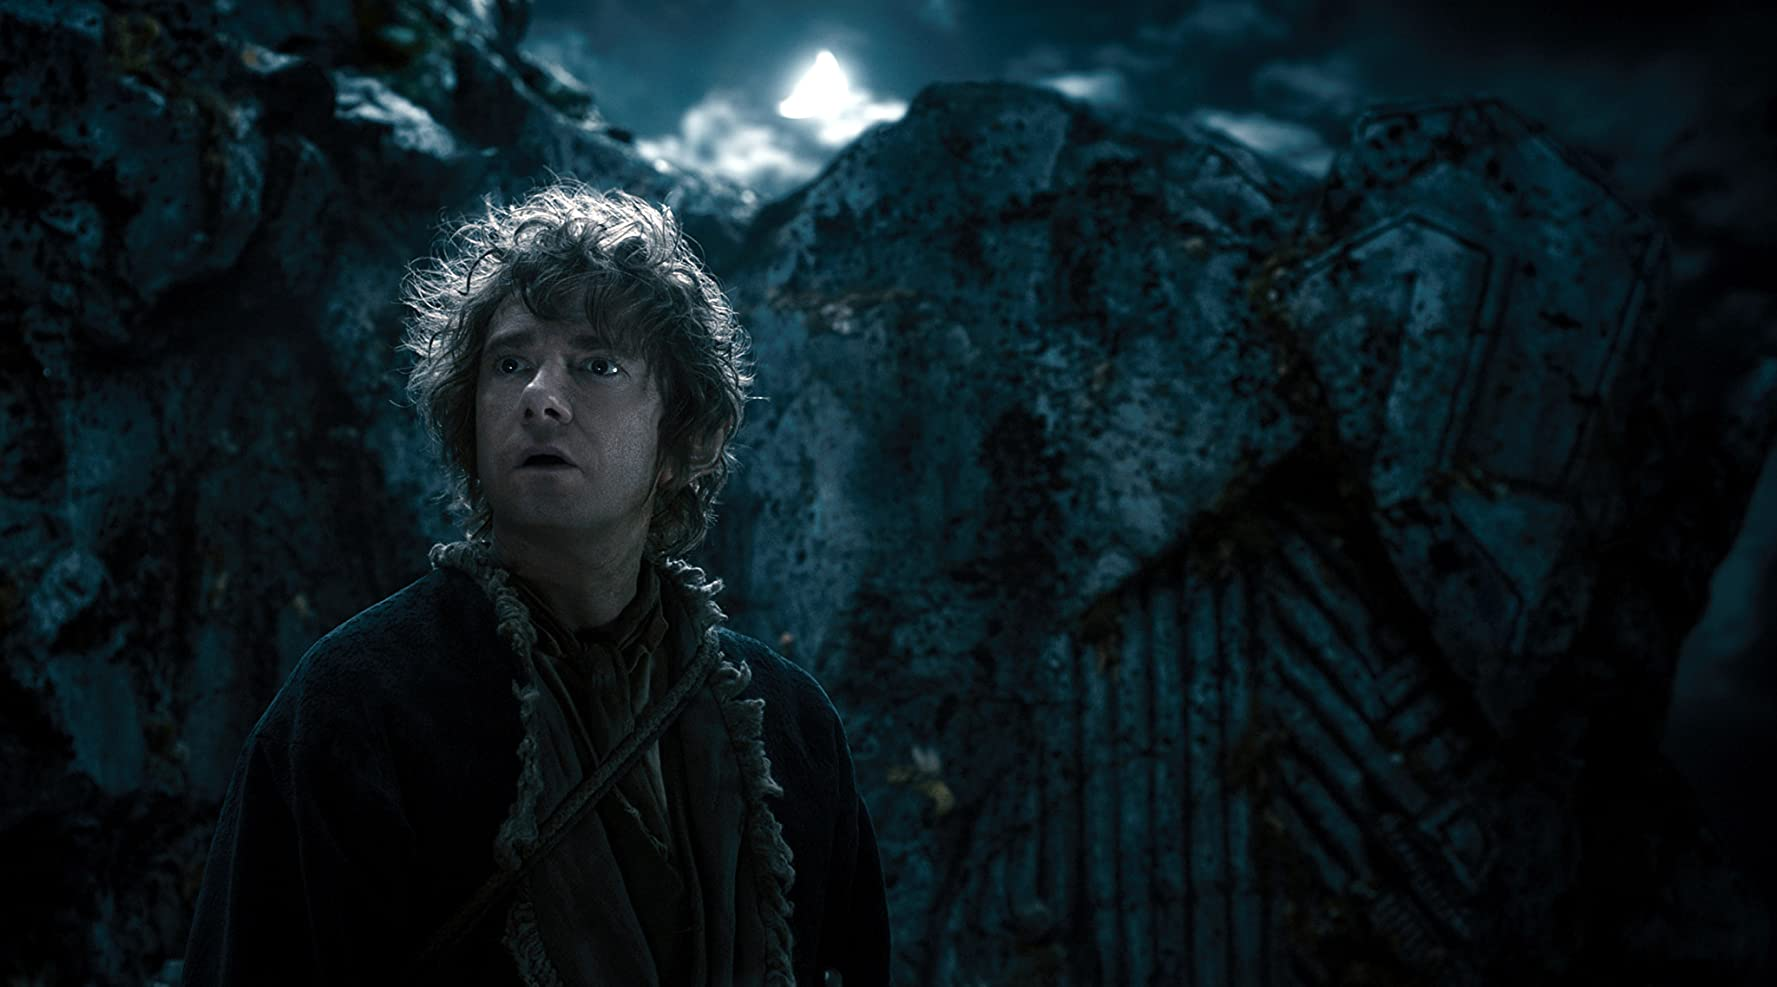 Martin Freeman in The Hobbit: The Desolation of Smaug (2013)